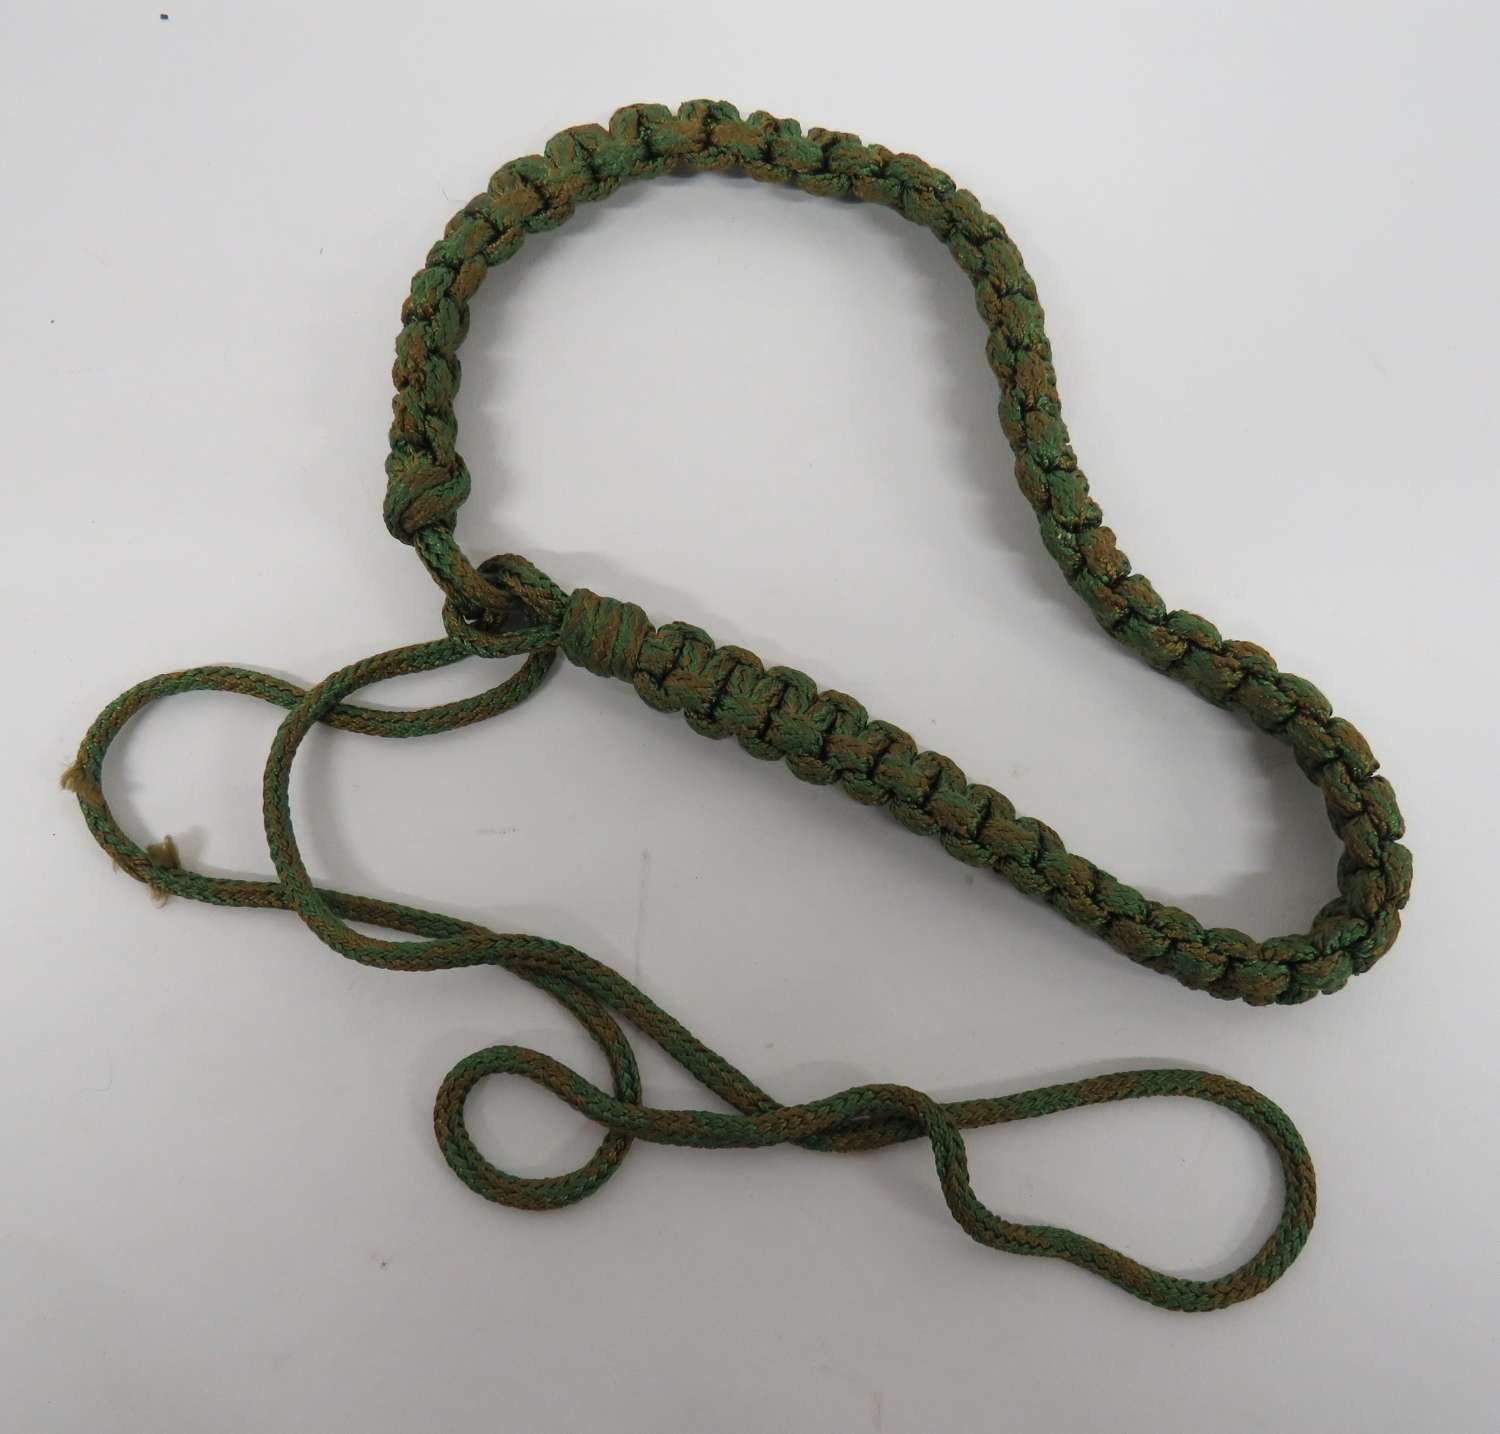 Coloured Military Lanyard